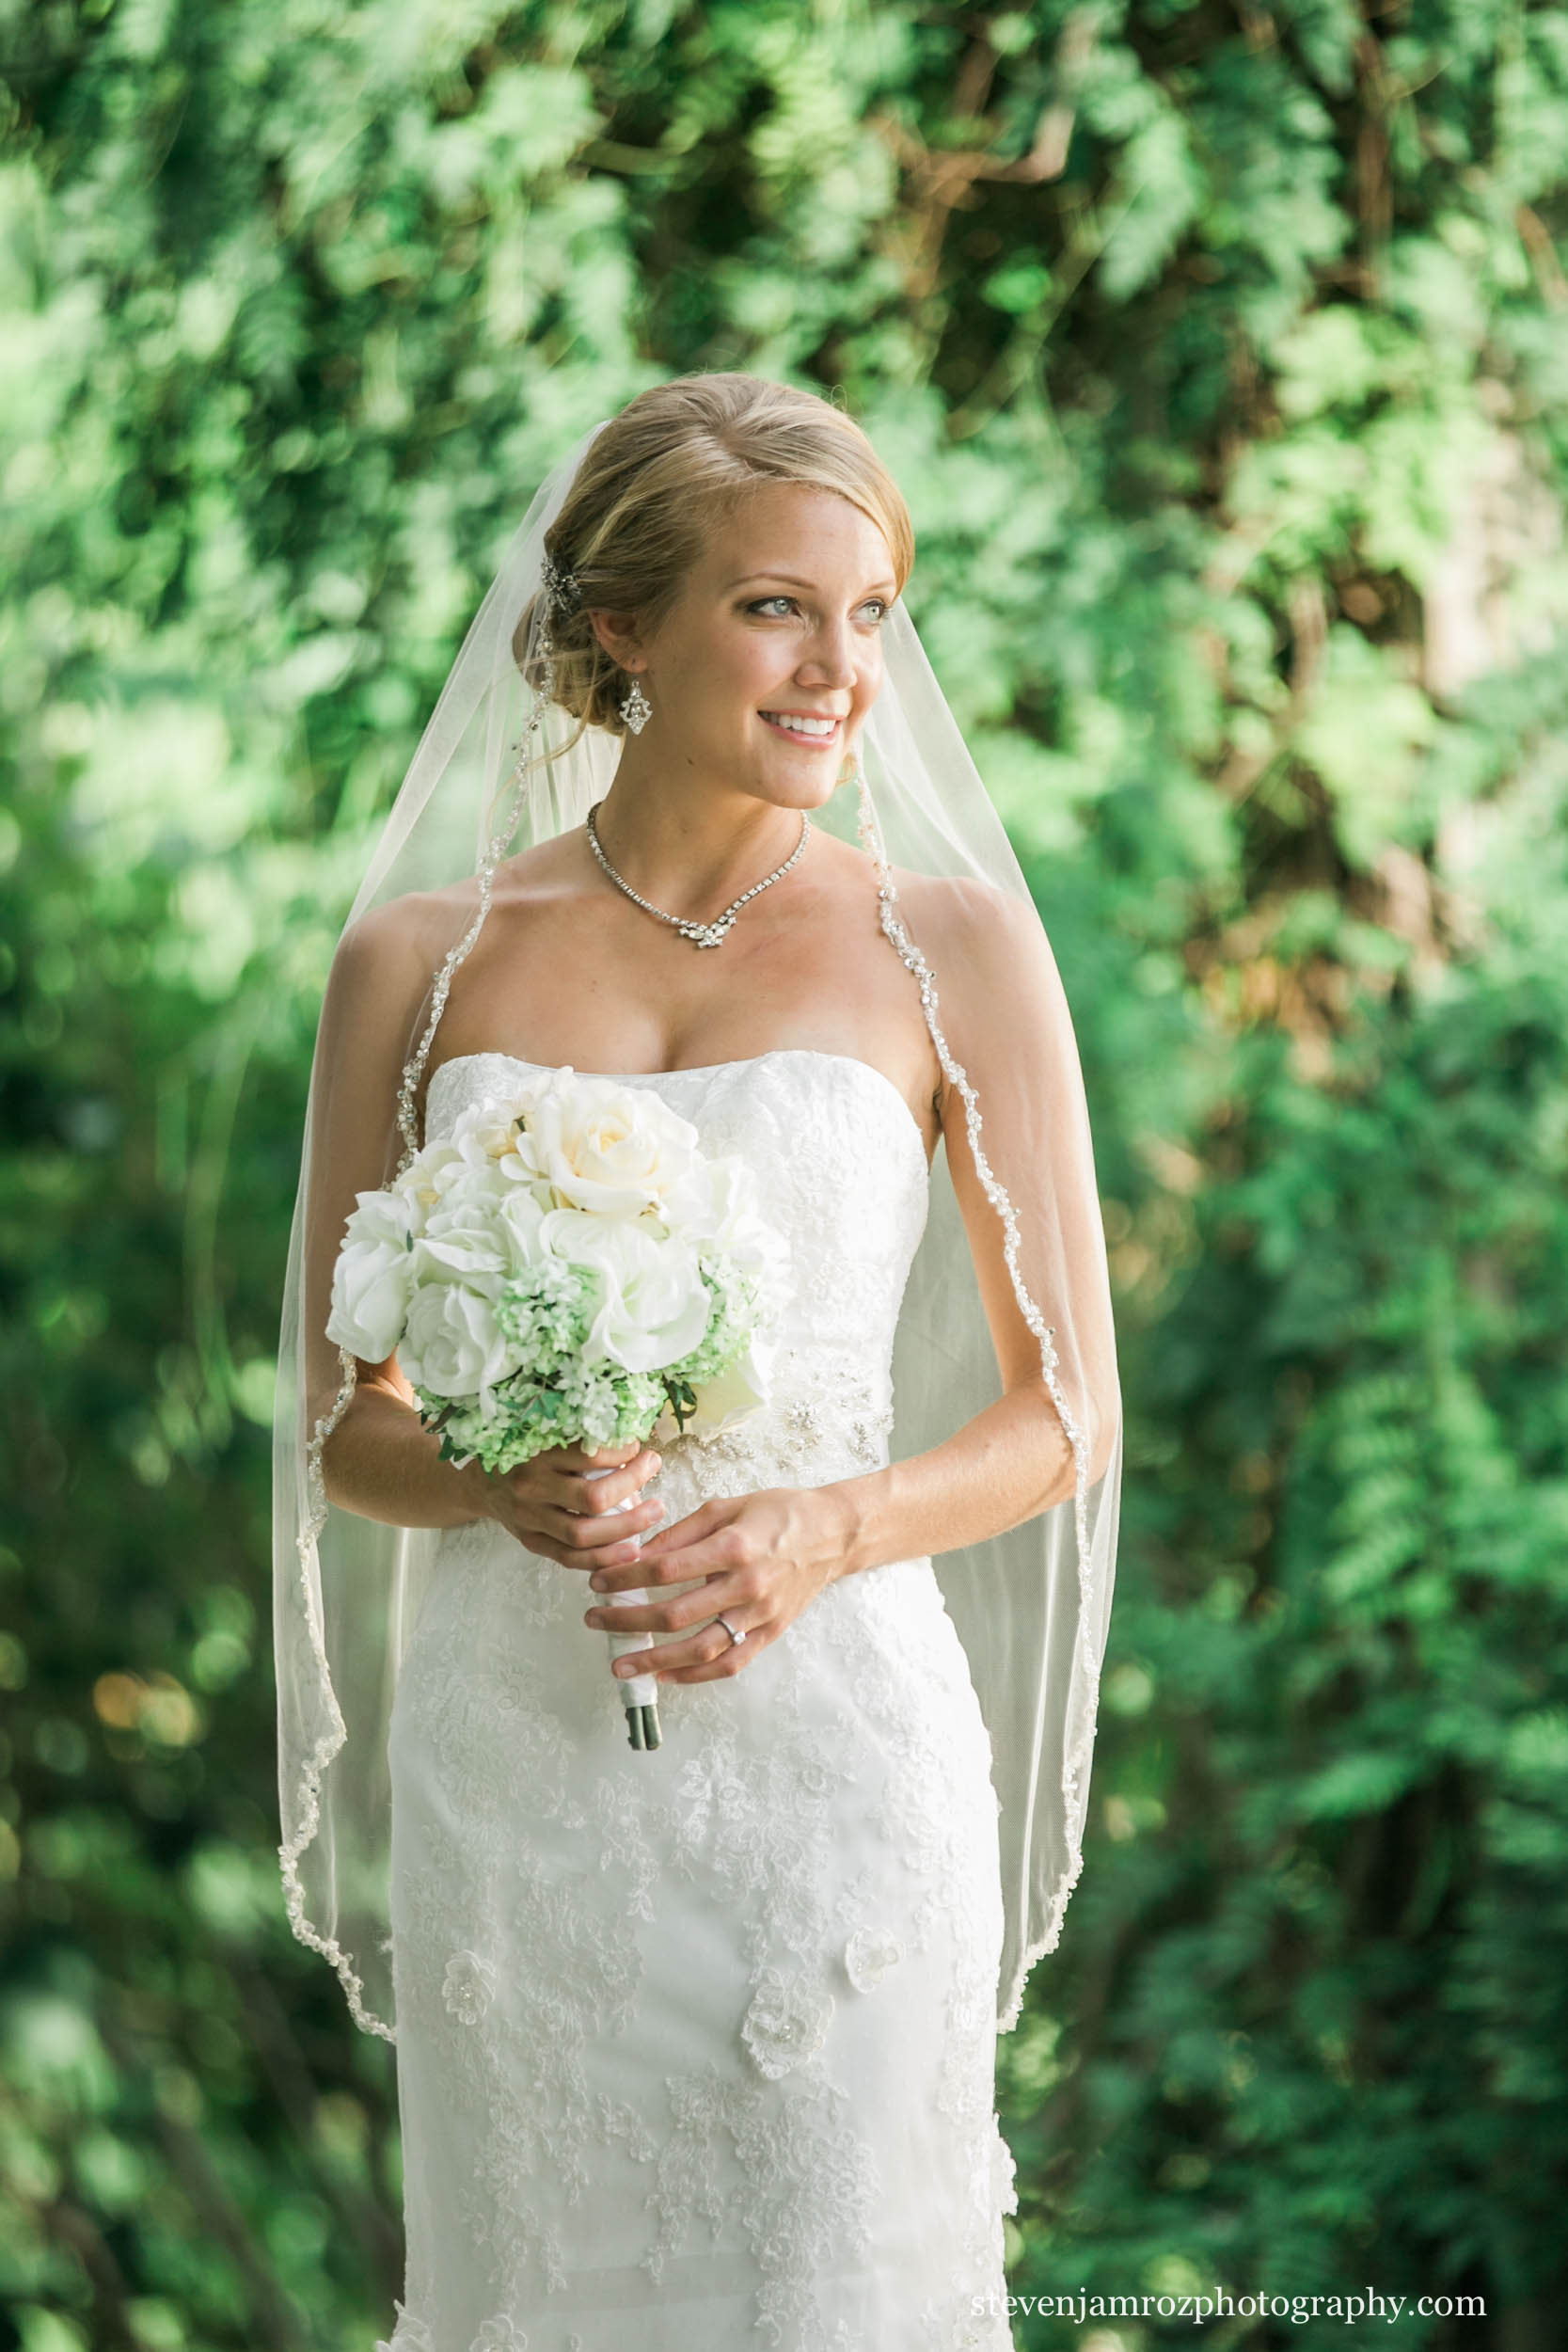 gorgeous-bridal-portrait-raleigh-steven-jamroz-photography-0249.jpg